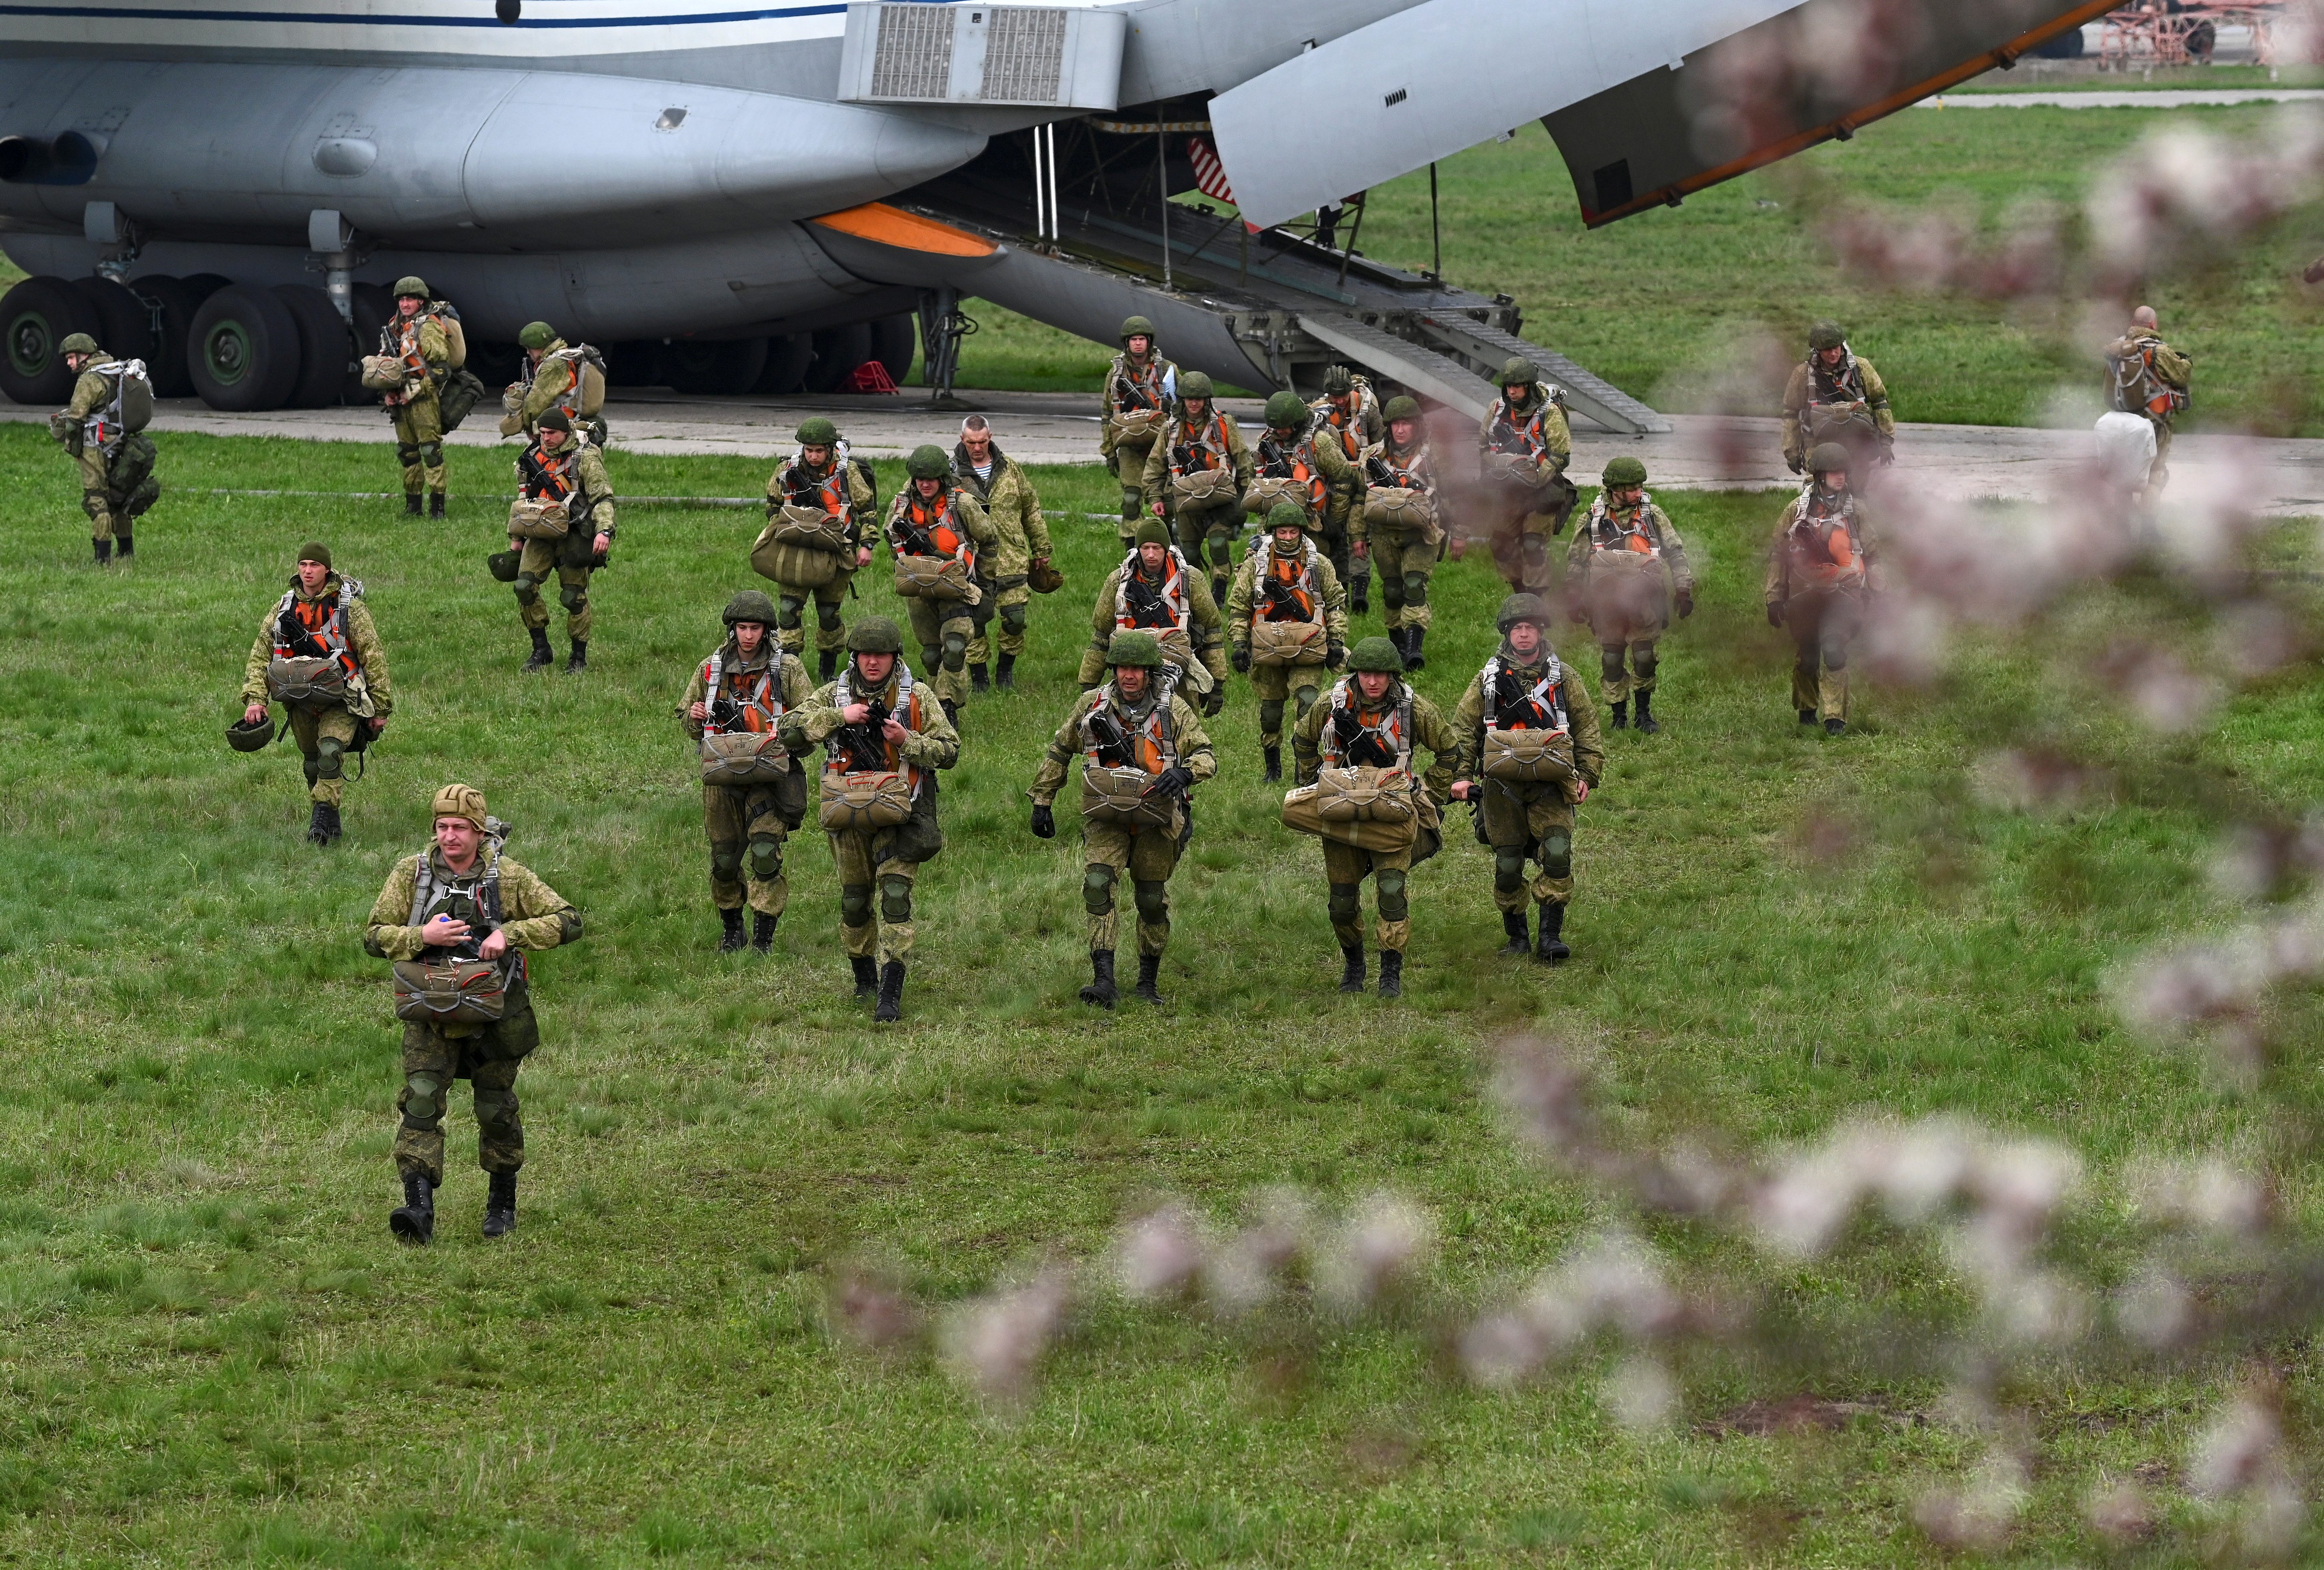 Service members of the Russian airborne forces walk before boarding Ilyushin Il-76 transport planes during drills at a military aerodrome in the Azov Sea port of Taganrog, Russia April 22, 2021. REUTERS/Stringer